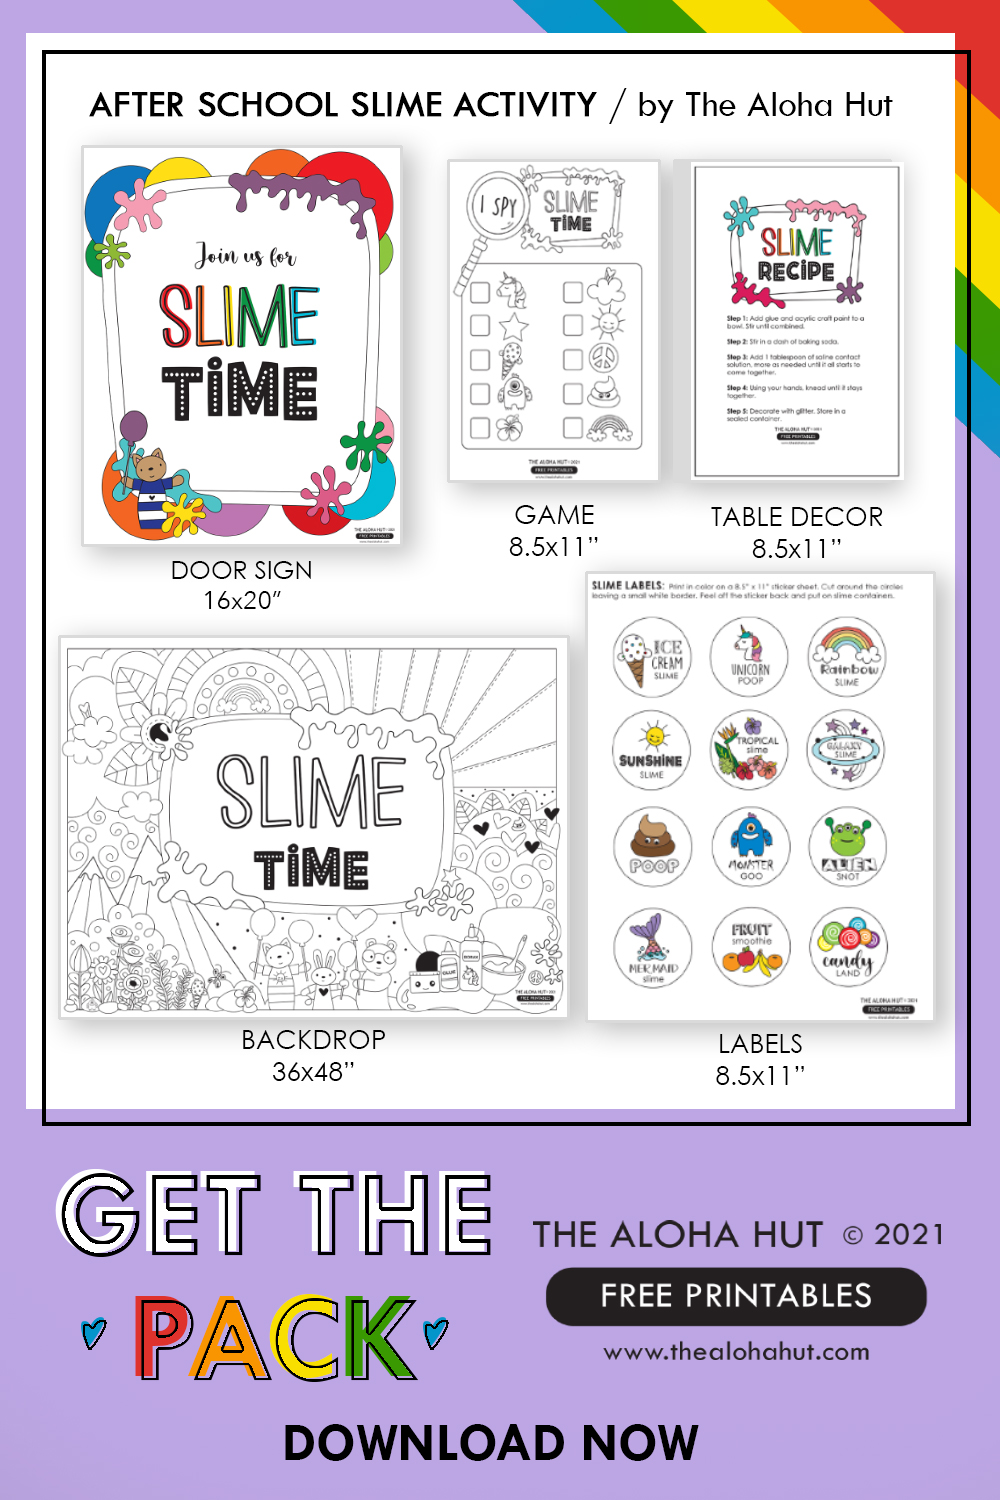 After School Slime Activity Pack FREE Printables - The Aloha Hut